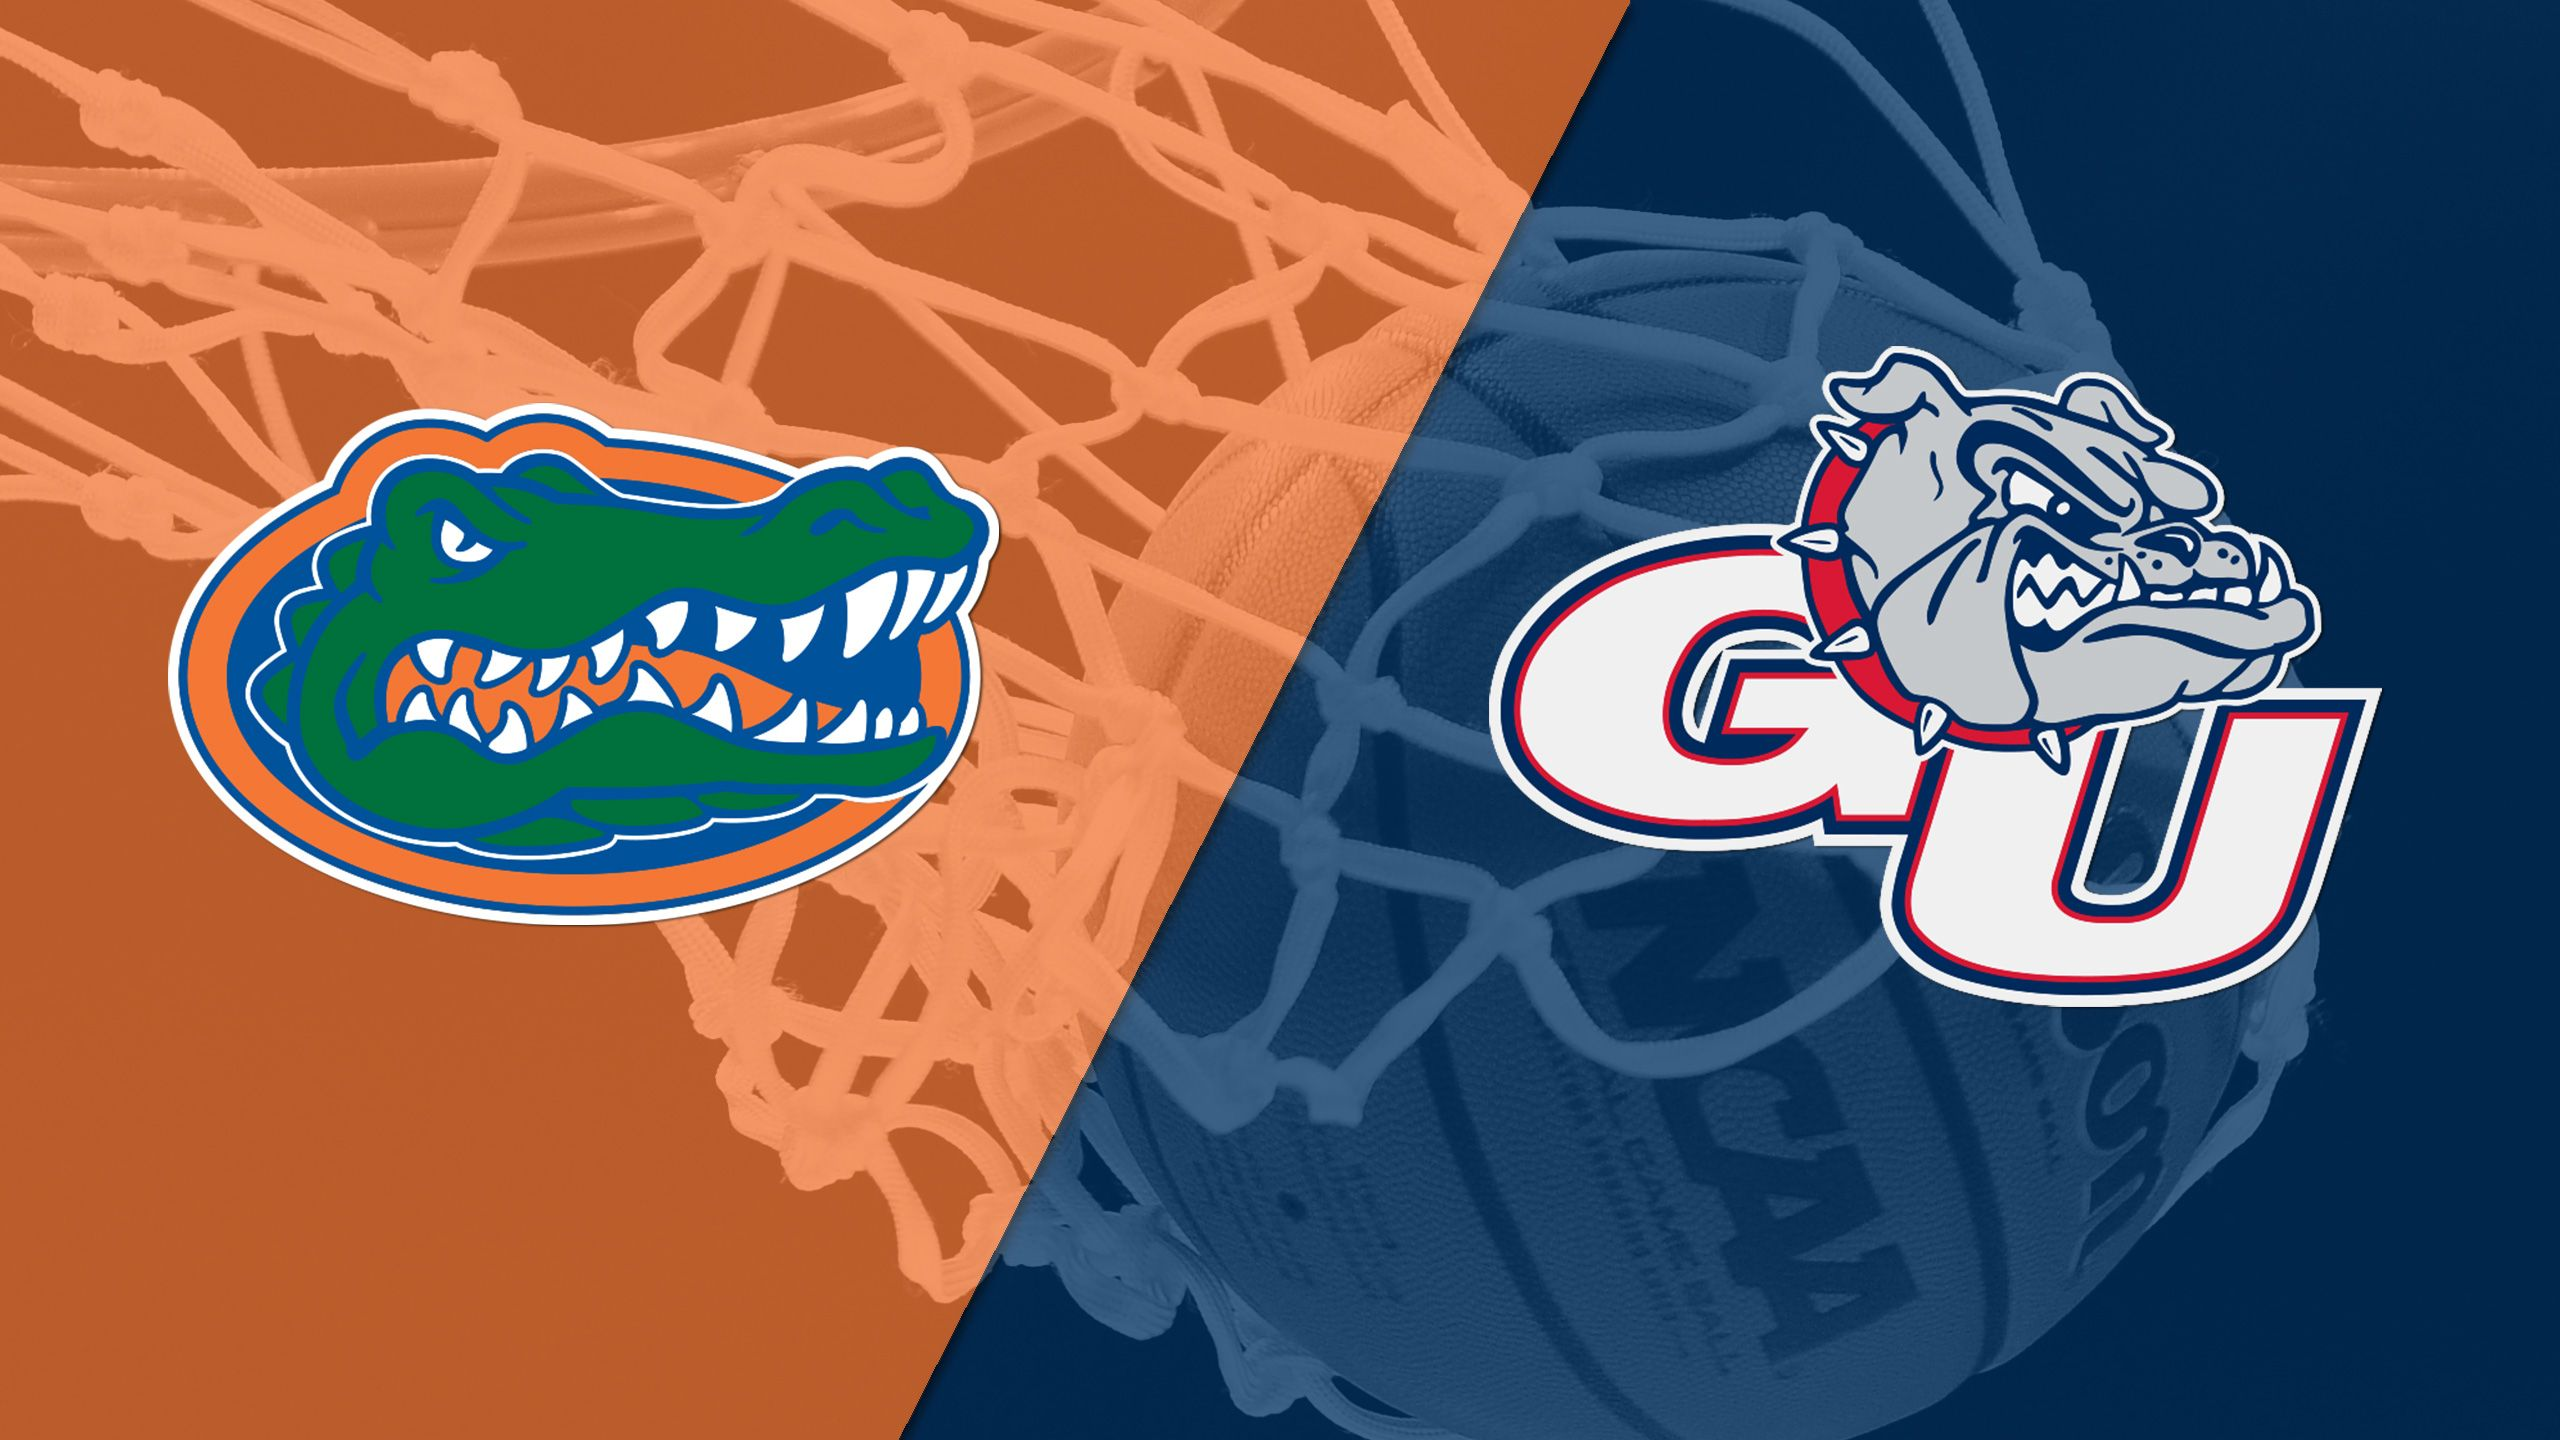 Above The Rim - #7 Florida vs. #17 Gonzaga (Semifinal #2) (PK80)